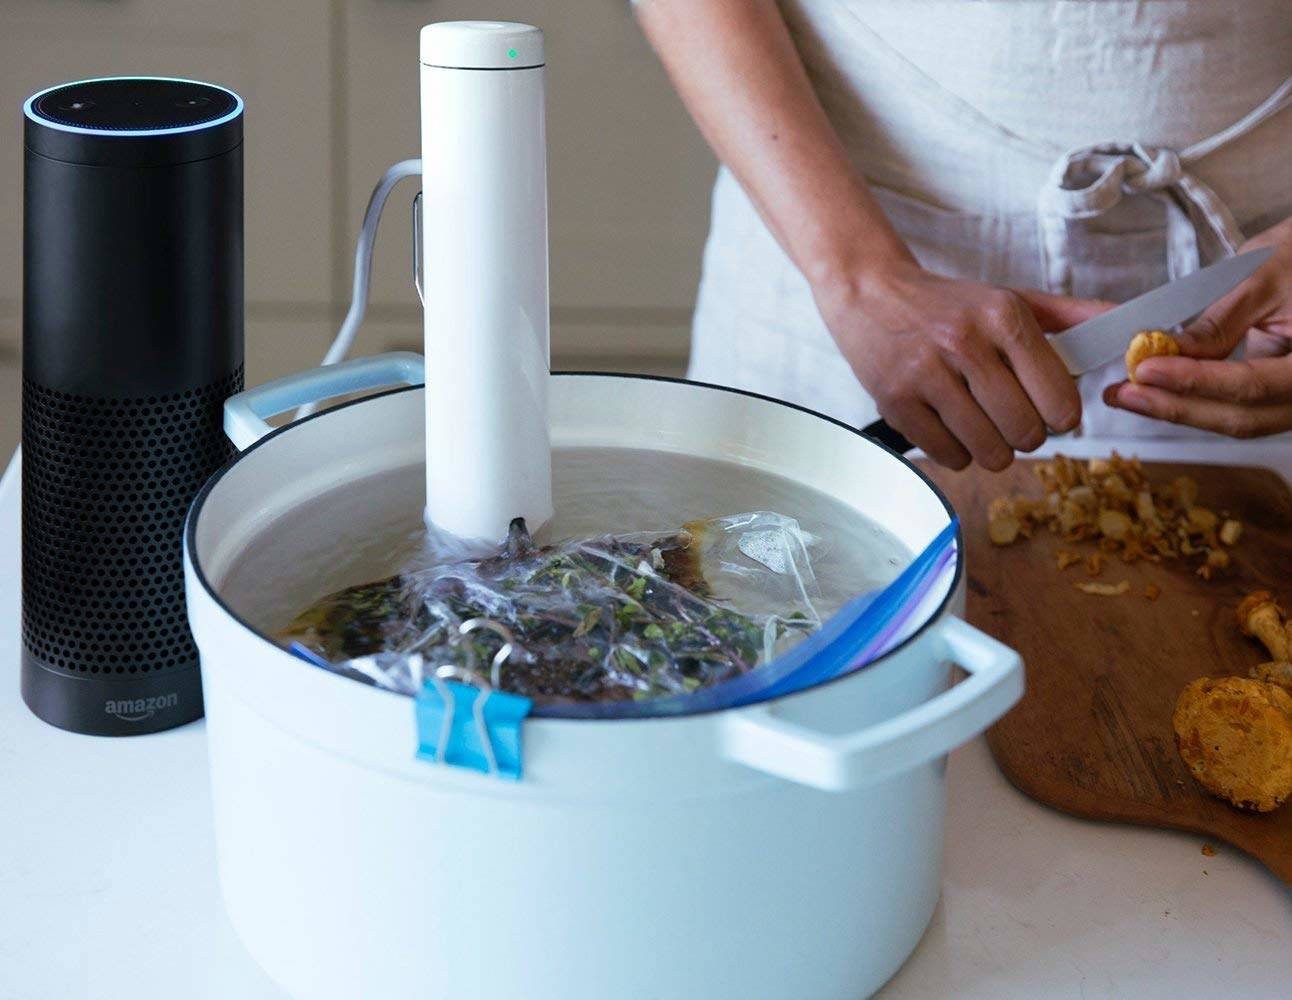 A sous vide chute in a pot of water with food inside a sealed bag